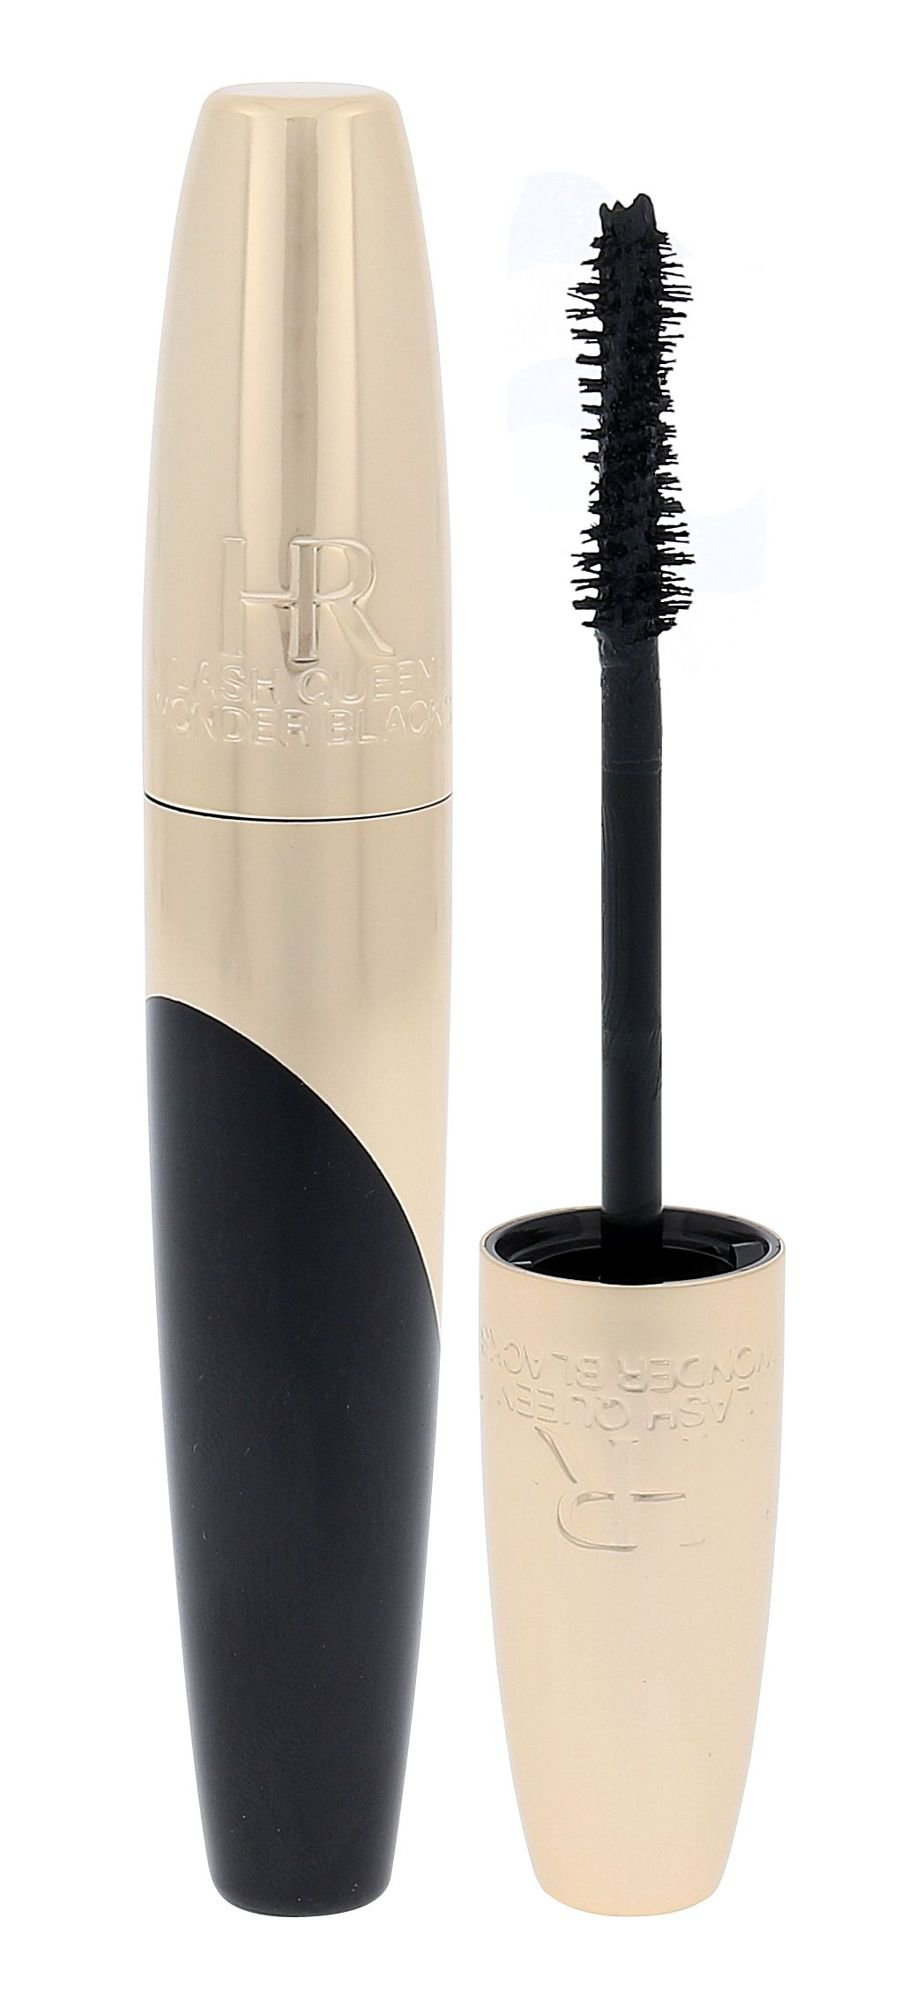 Helena Rubinstein Lash Queen Wonder Blacks 01 Wonderful Black, Szempillaspirál 7ml